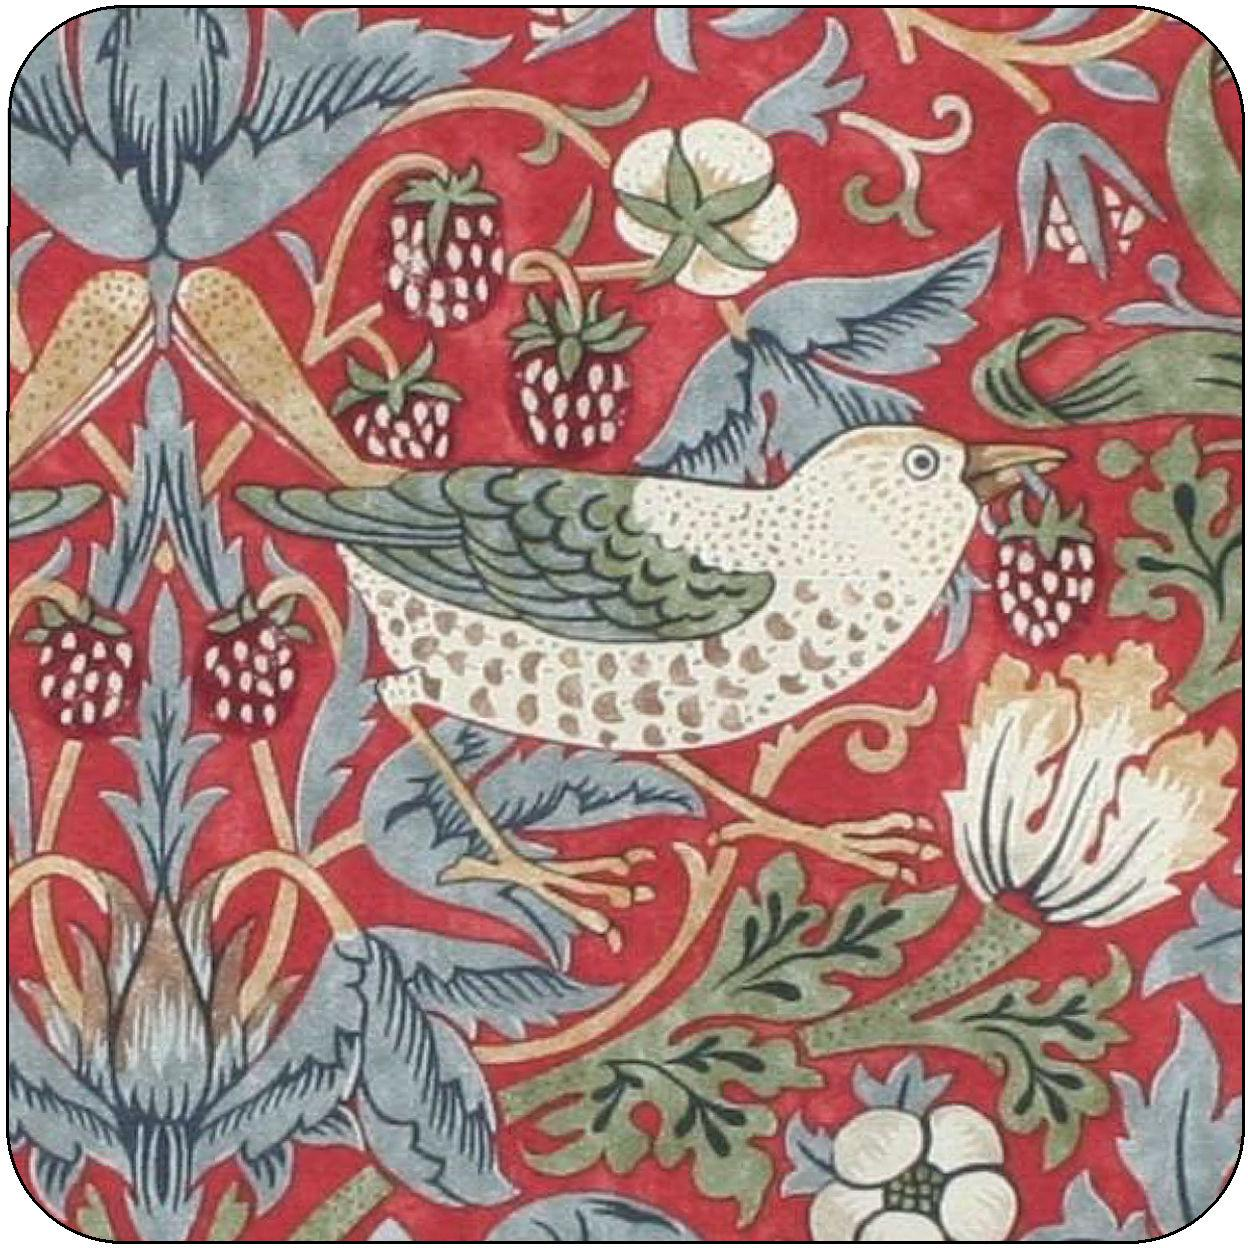 Pimpernel William Morris Strawberry Thief Red Coasters Set Of 6 Louis Potts